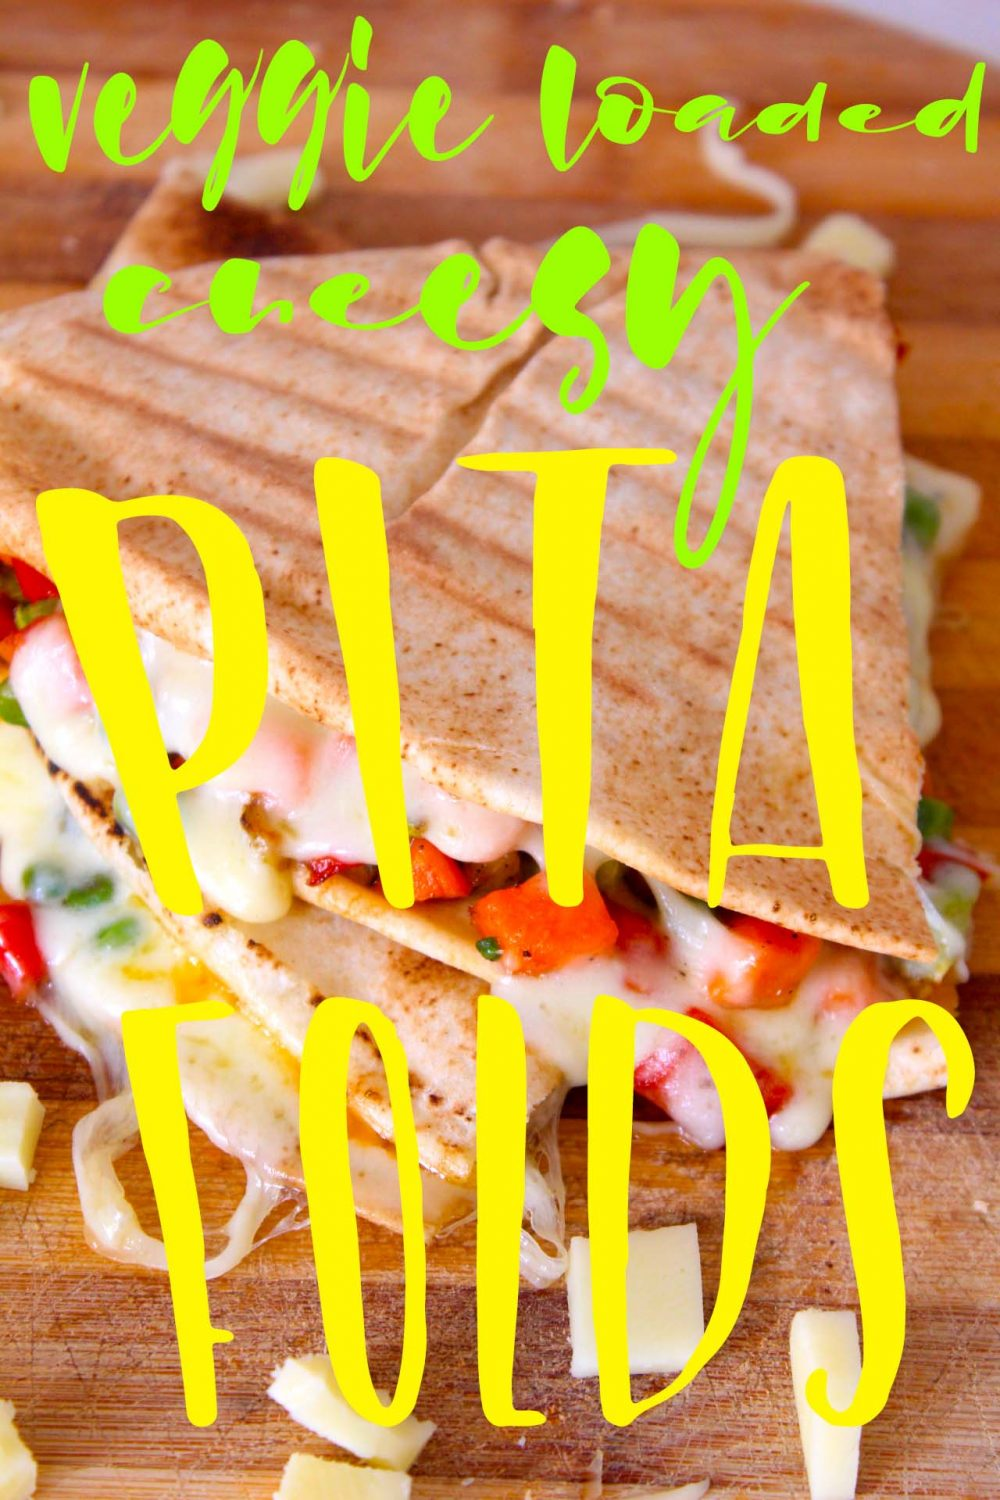 Try this insanely easy pita sandwich recipe for a quick, delicious dinner idea or a lunch on the go! Filled with healthy veggie and cheese, these are bursting with flavor!